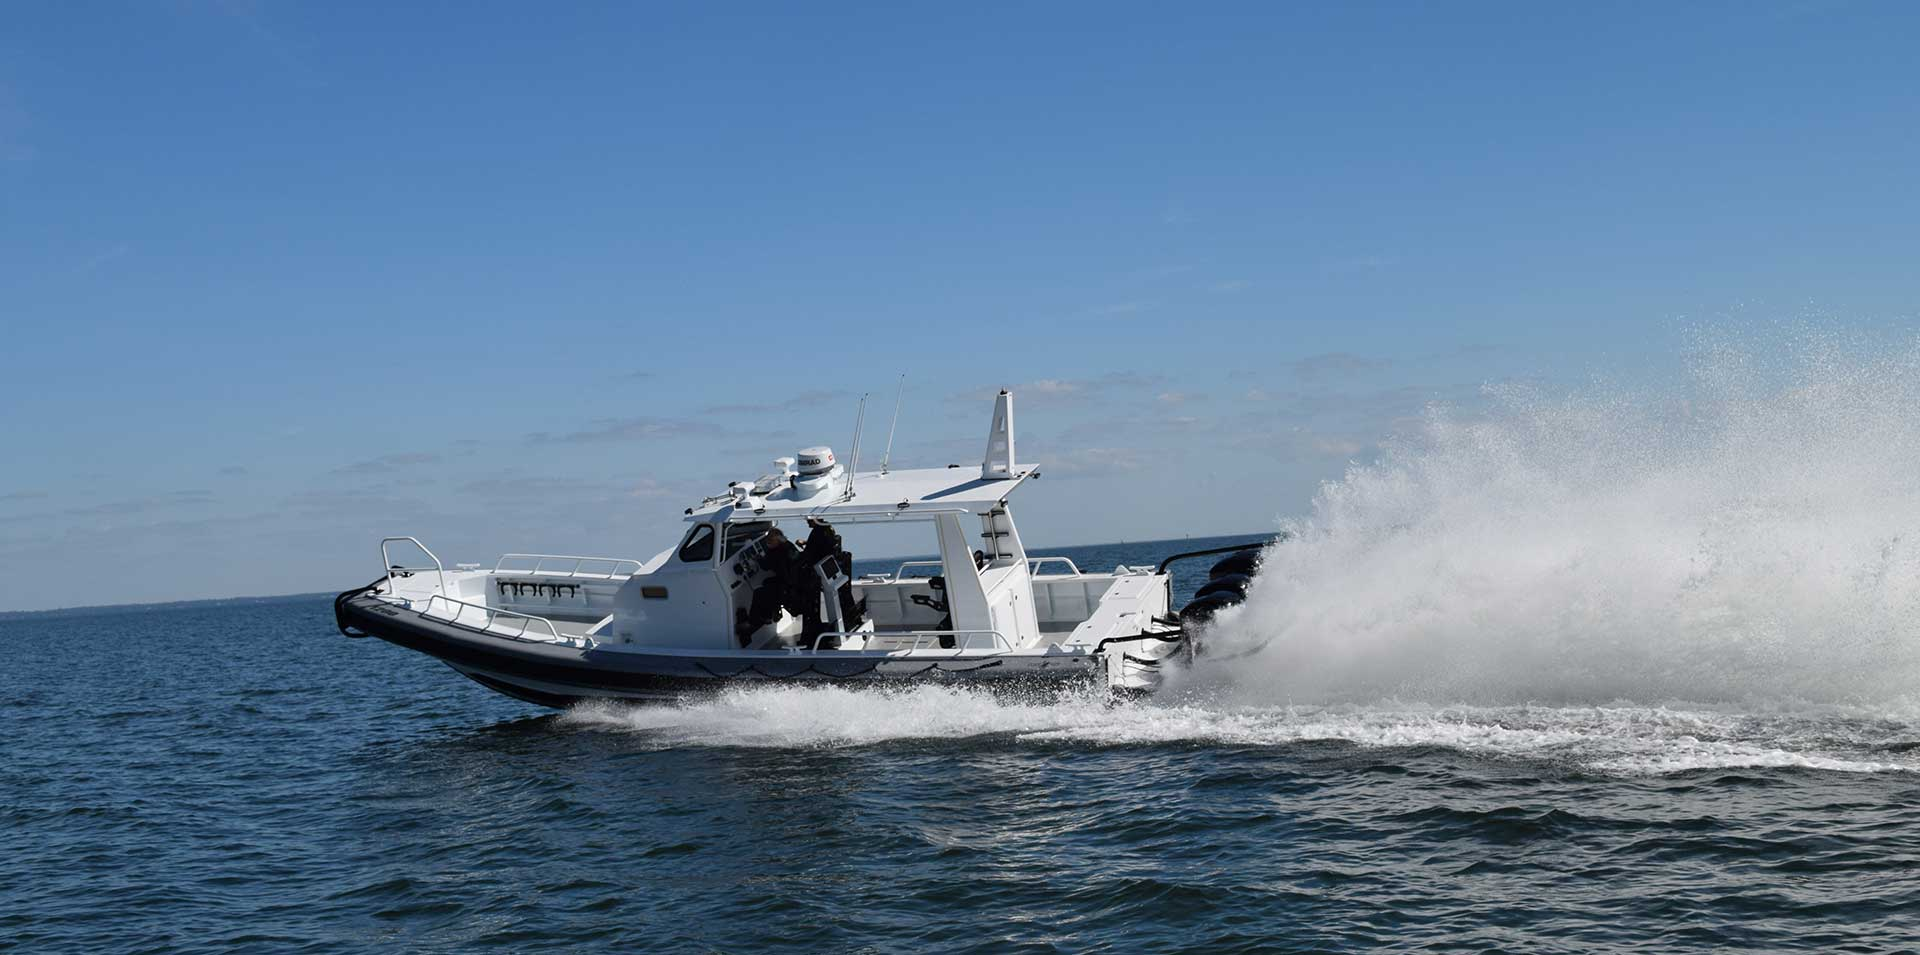 Silver Ships Ambar Series AM 1200 making wake in ocean